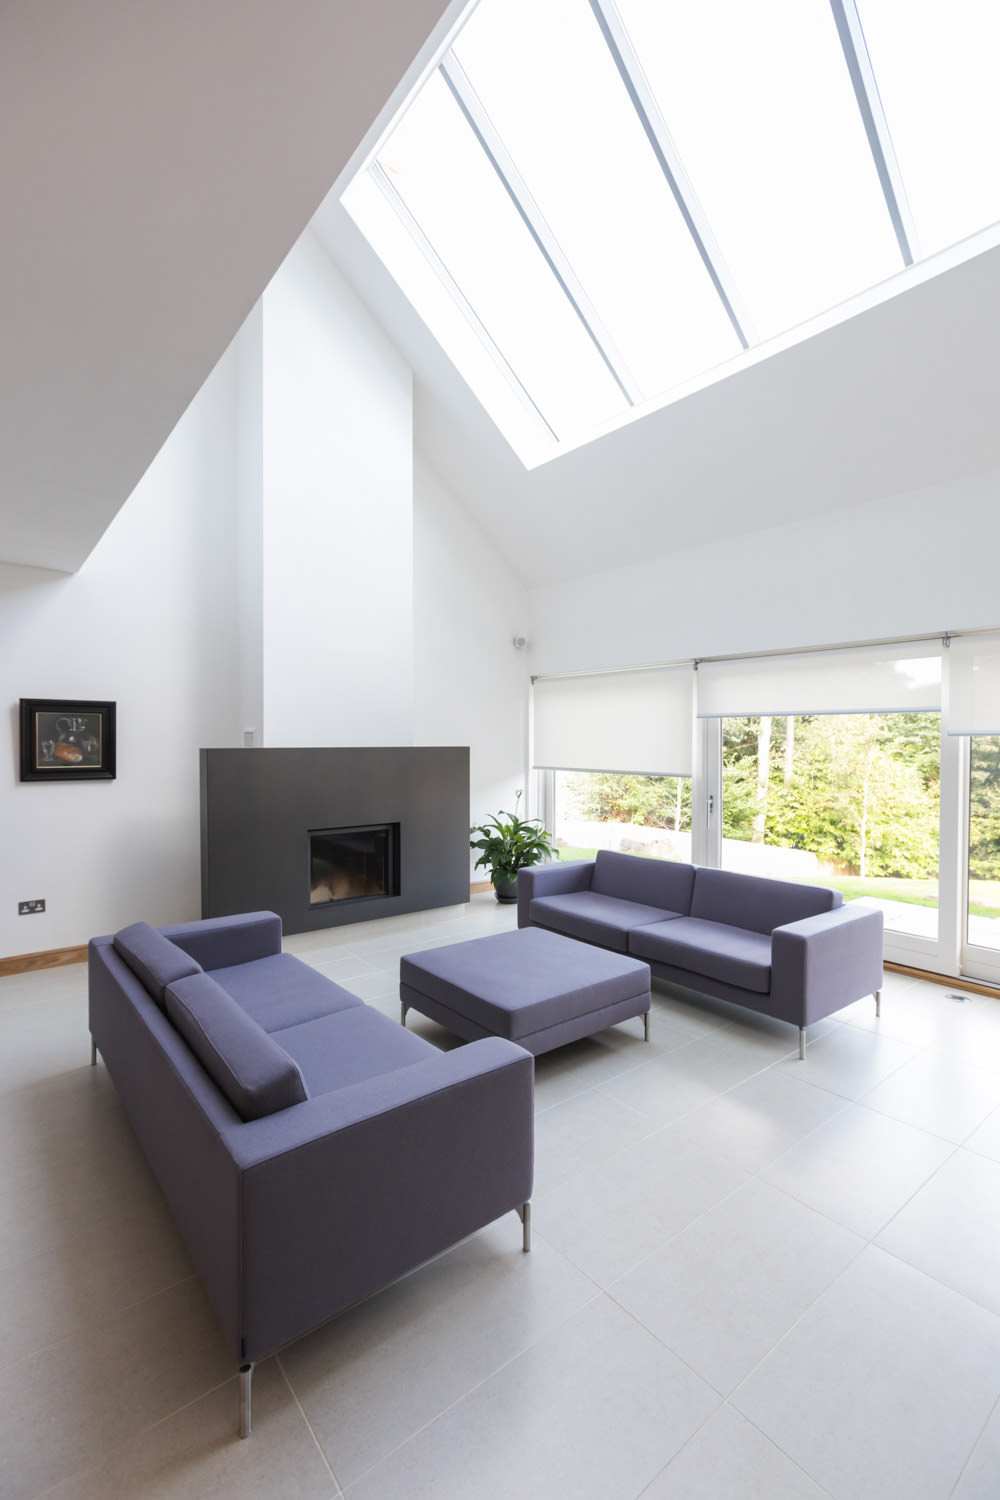 Interiors photographer Scotland